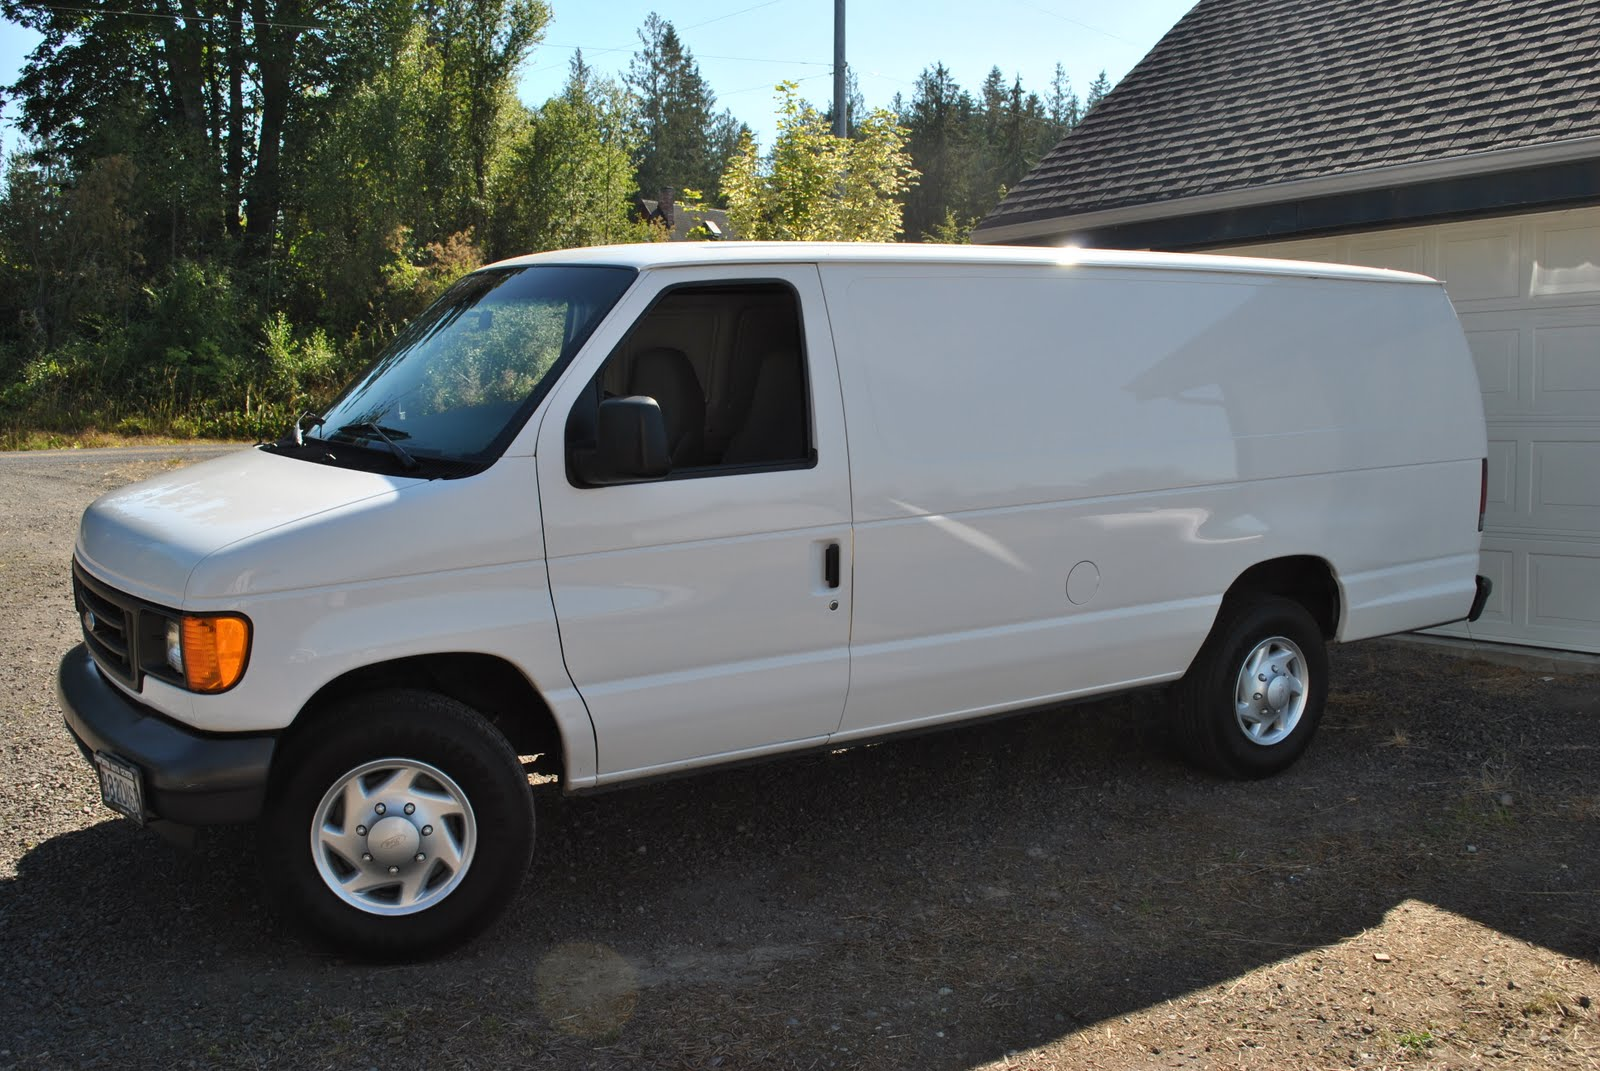 2007 Ford Van in good shape 60K mi  Prodigy BIO PackageThis wont last Prodigies are coveted use